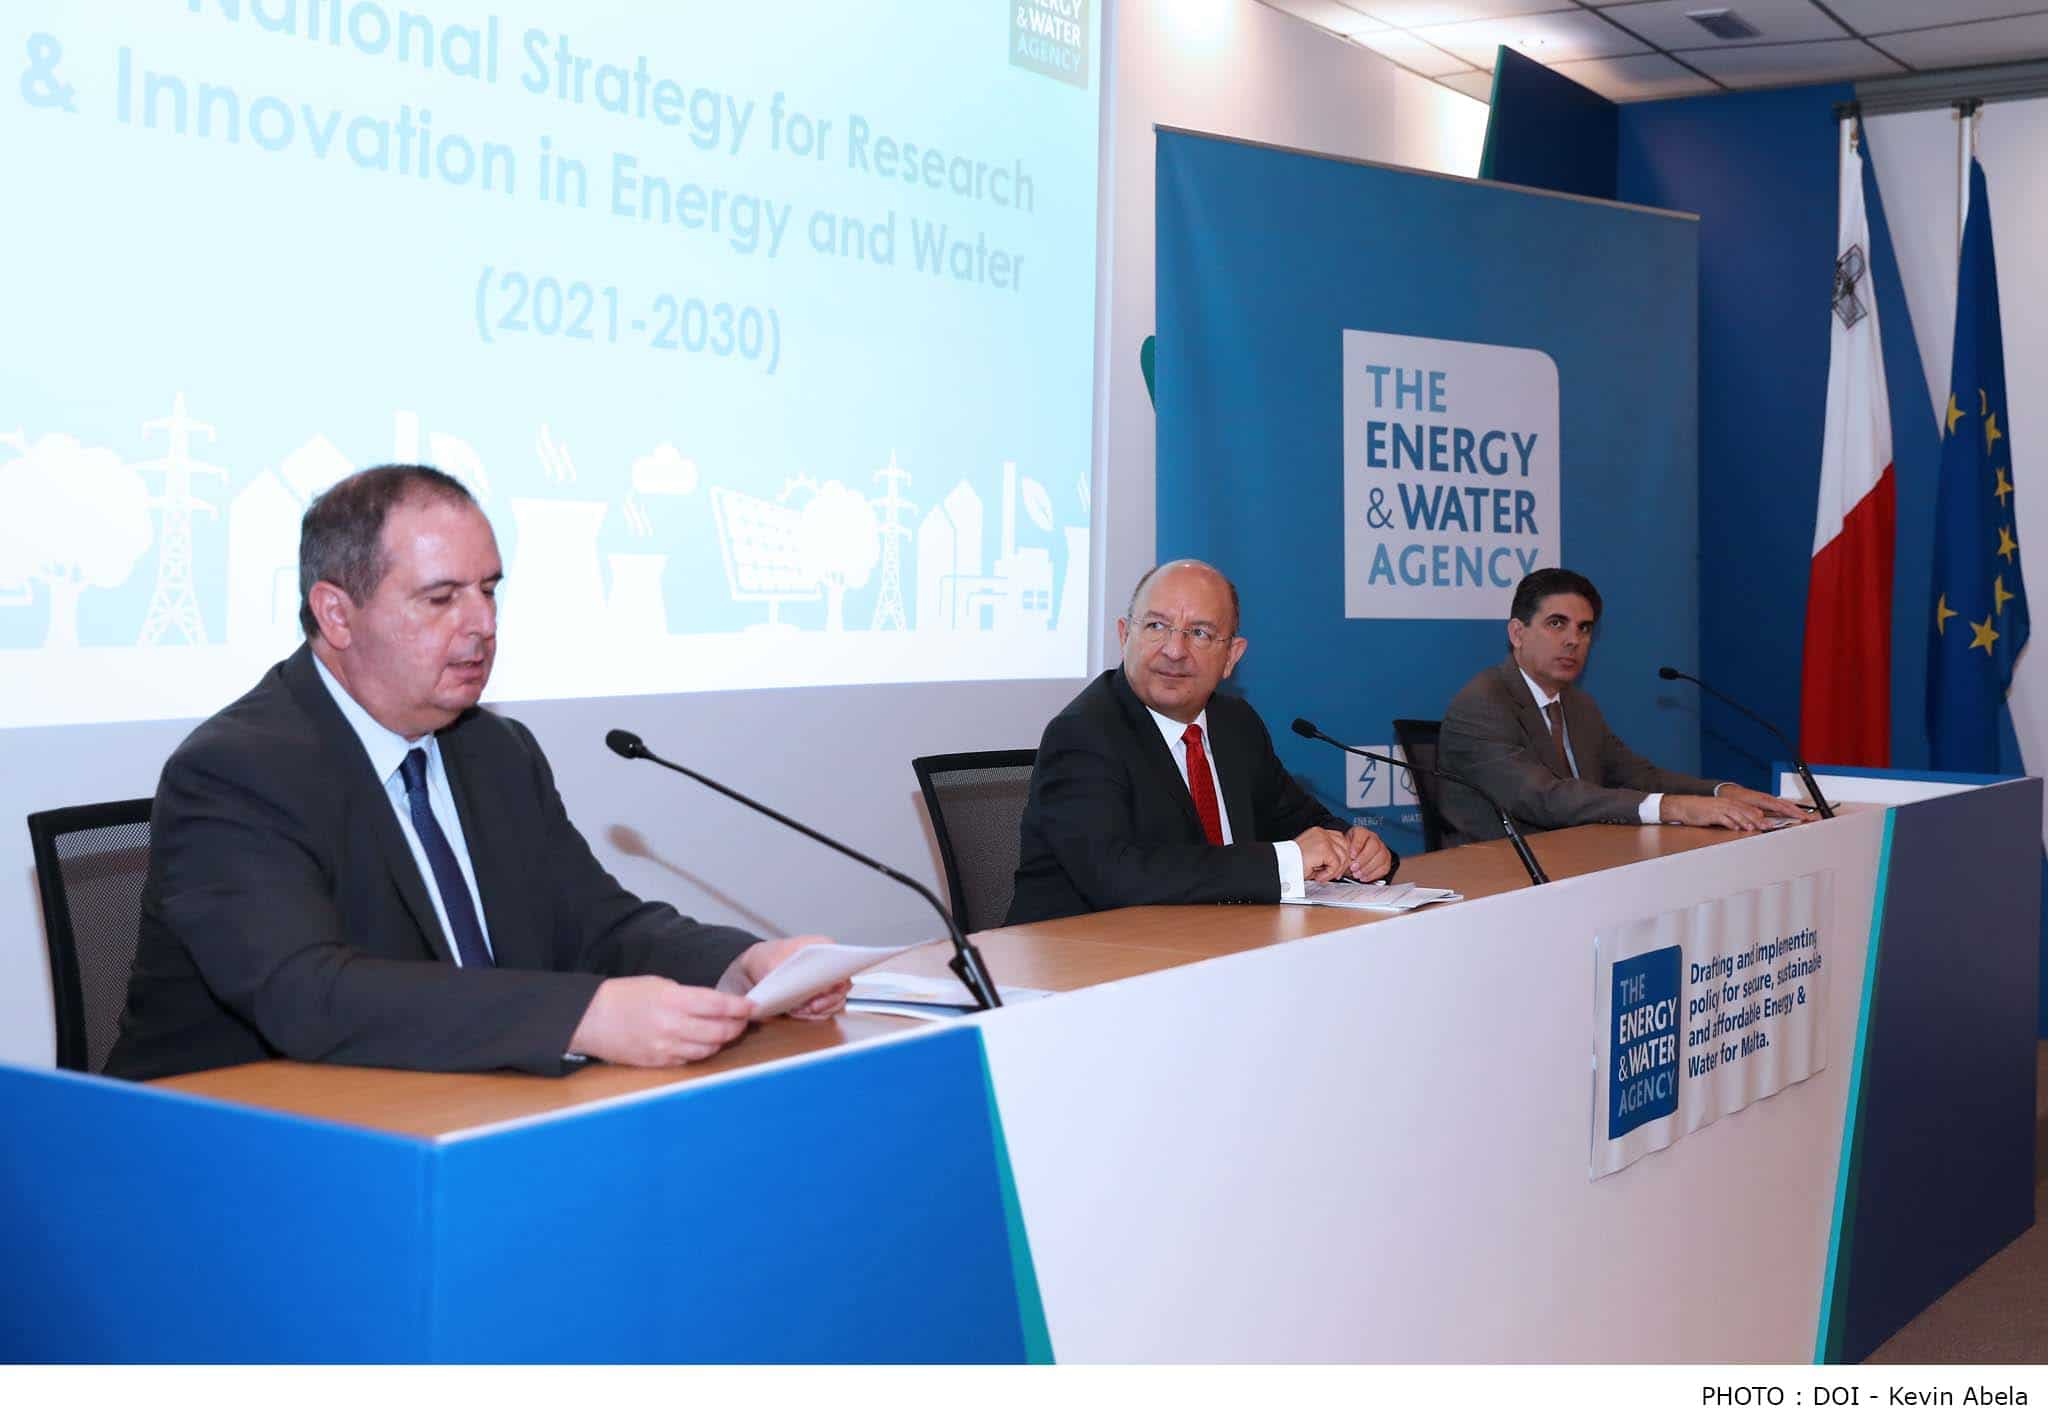 Minister for Energy and Water Management Michael Farrugia launches the National Strategy for Research and Innovation in Energy and Water 2021-2030-Energy and Water Agency, Luqa-17-6-2020